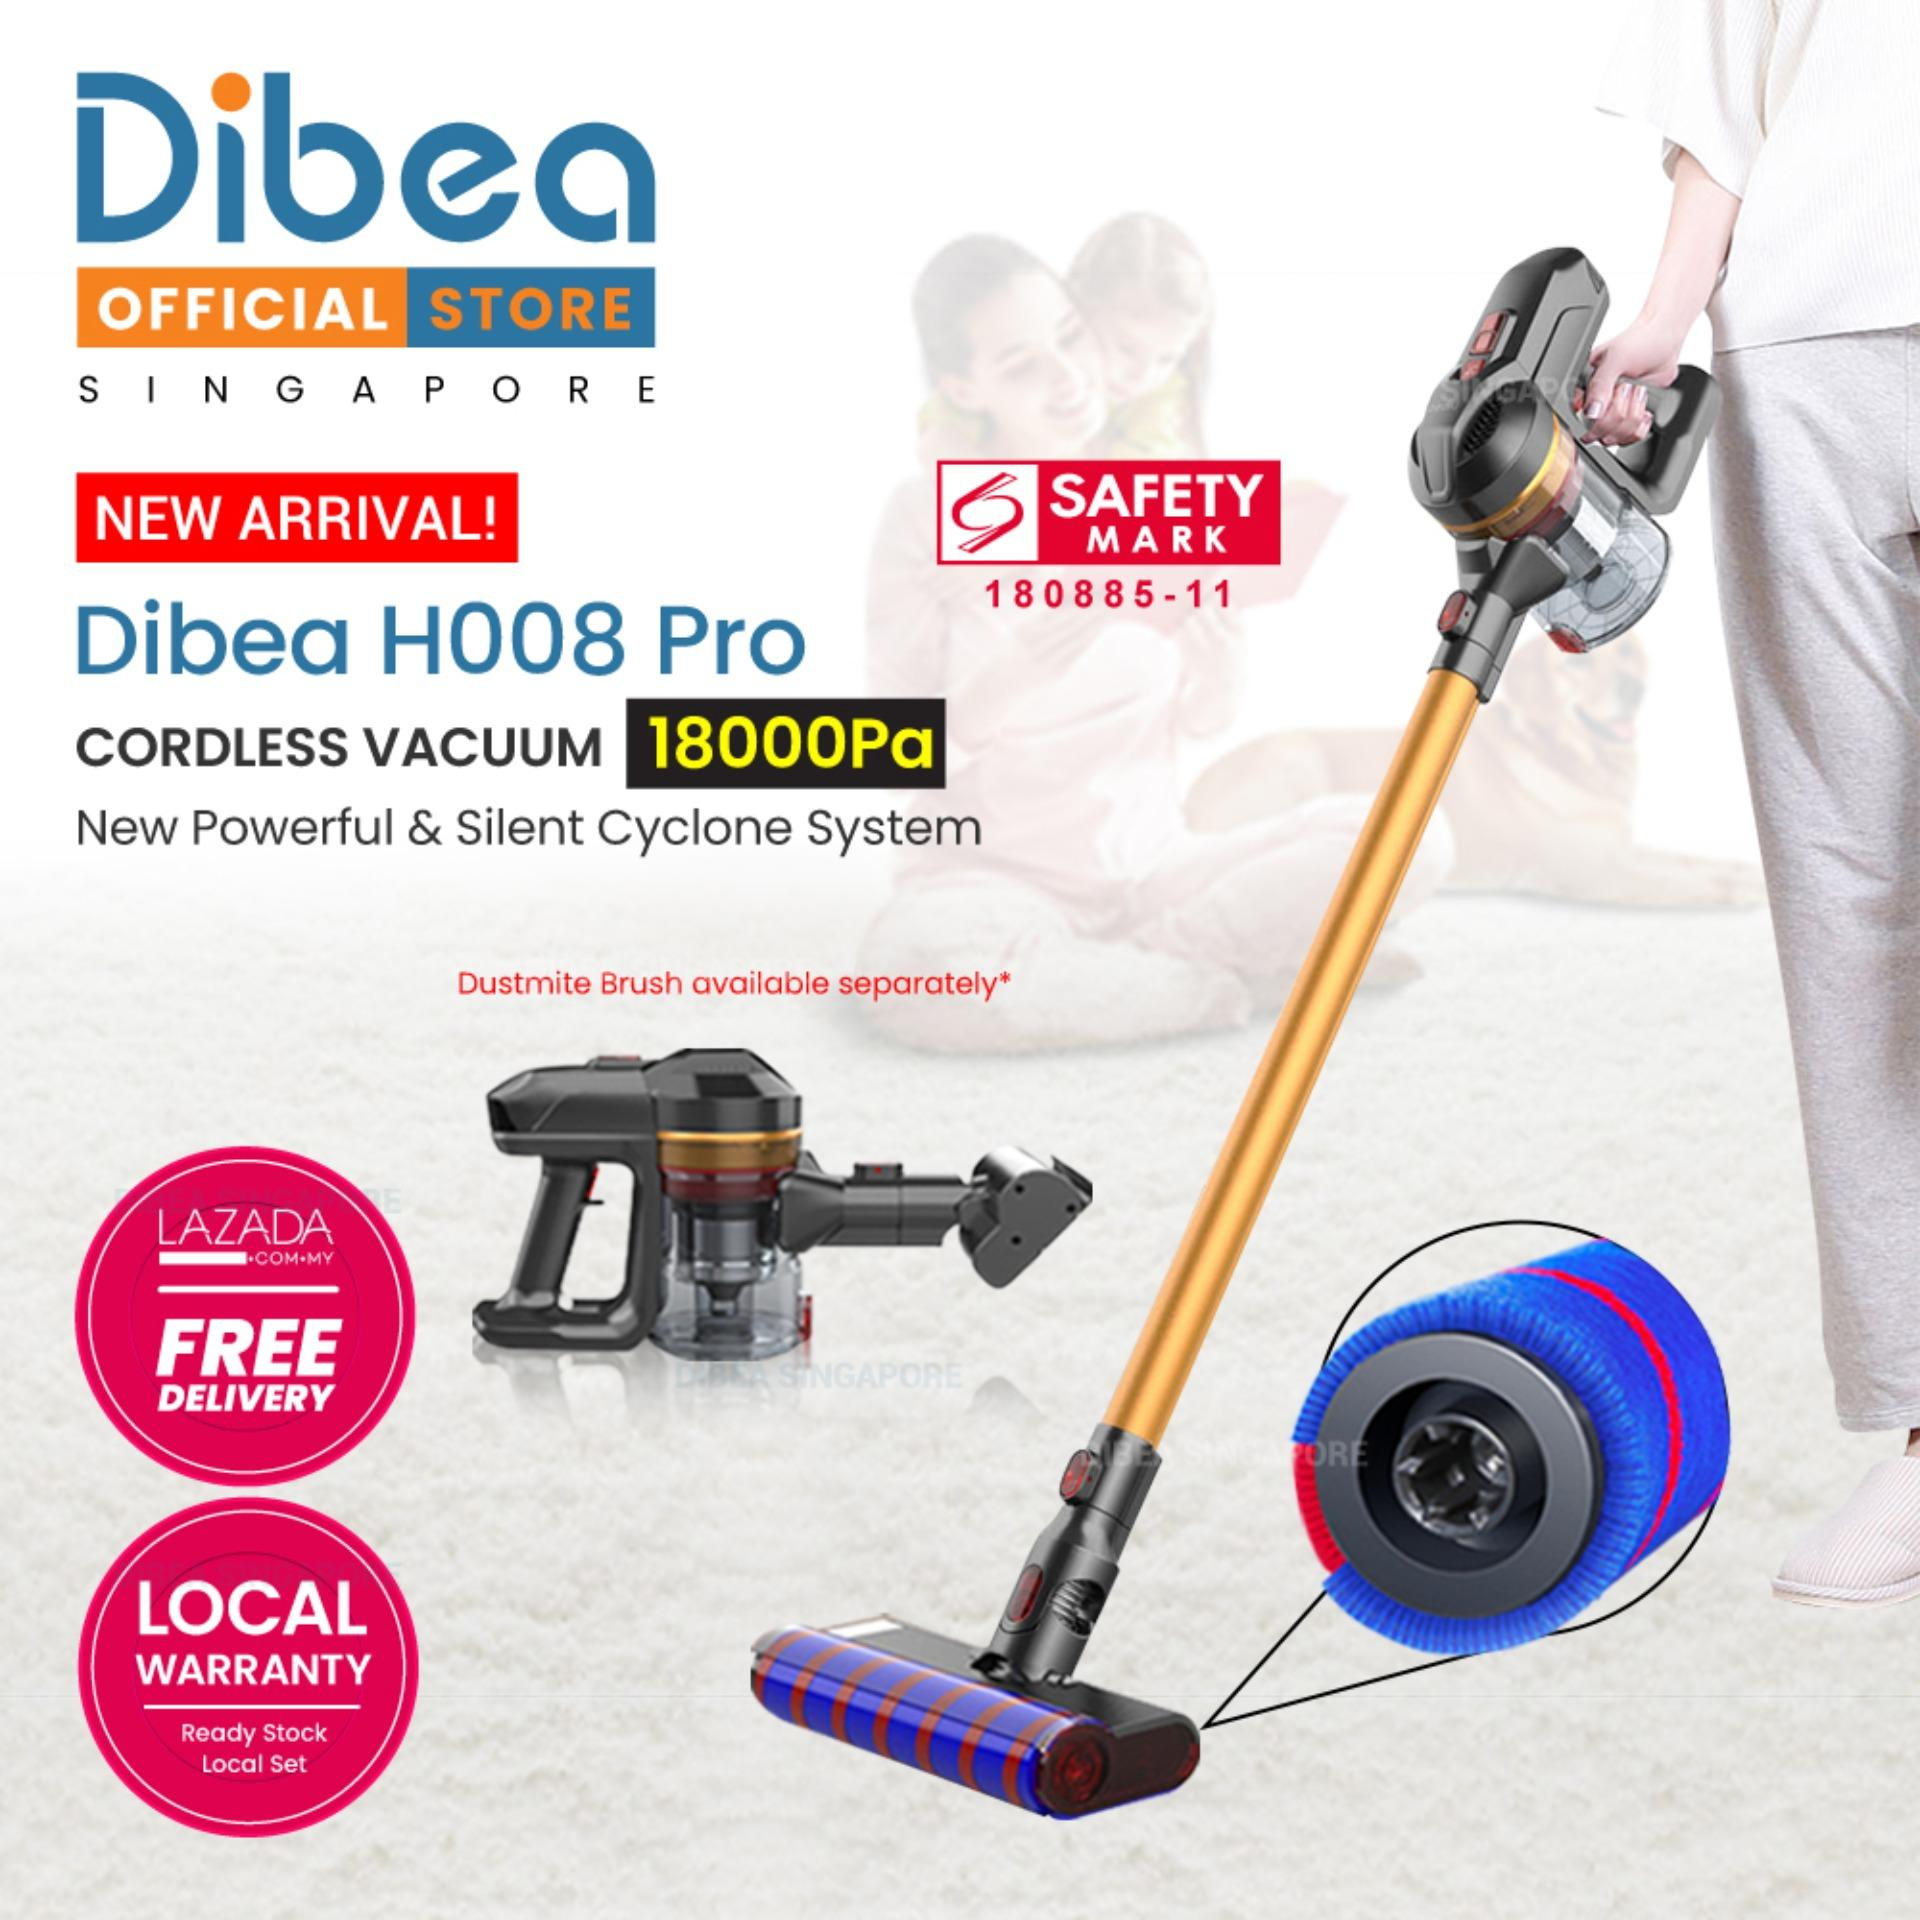 Dibea H008 Pro Cordless Vacuum Cleaner Handheld Stick Large Capacity Household Appliances With Vacuum Cleaner Brush By Dibea Singapore Pte Ltd.